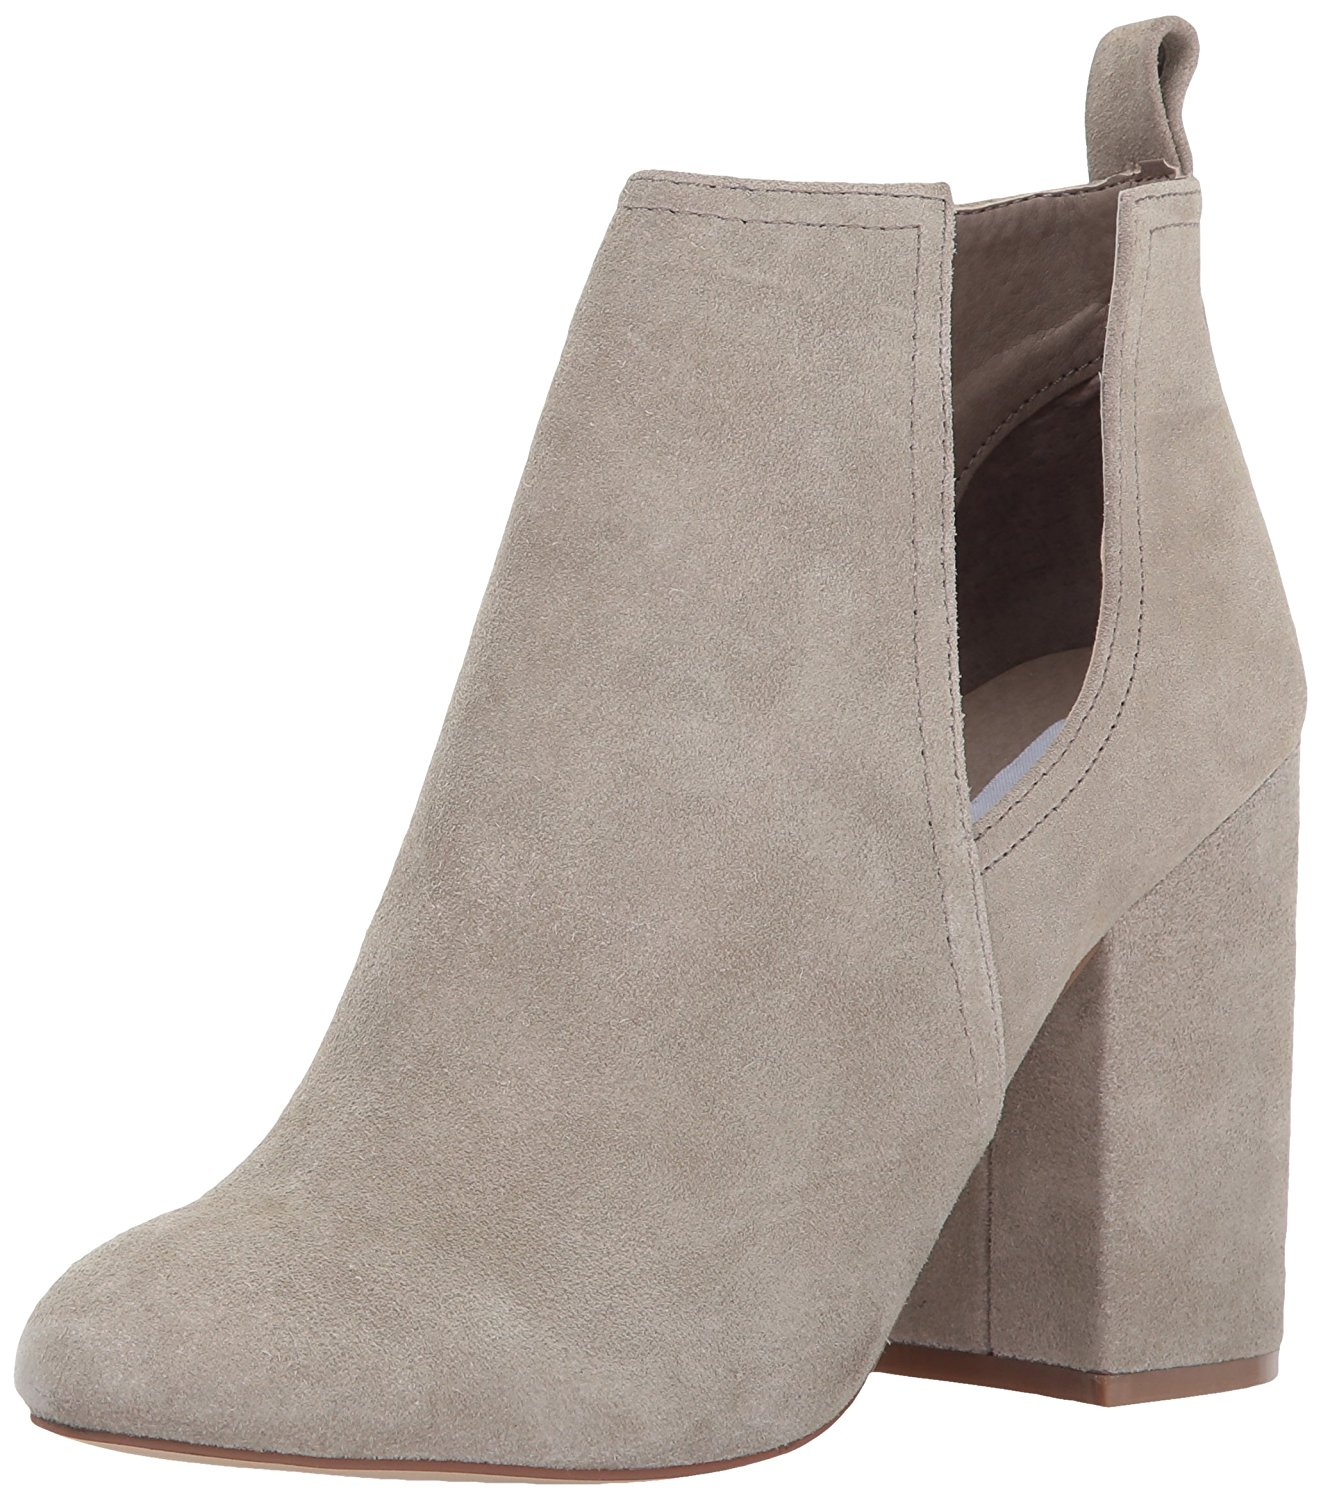 Steve Madden Women's Naomi Ankle Bootie Taupe Suede Size 9.5 HJIb